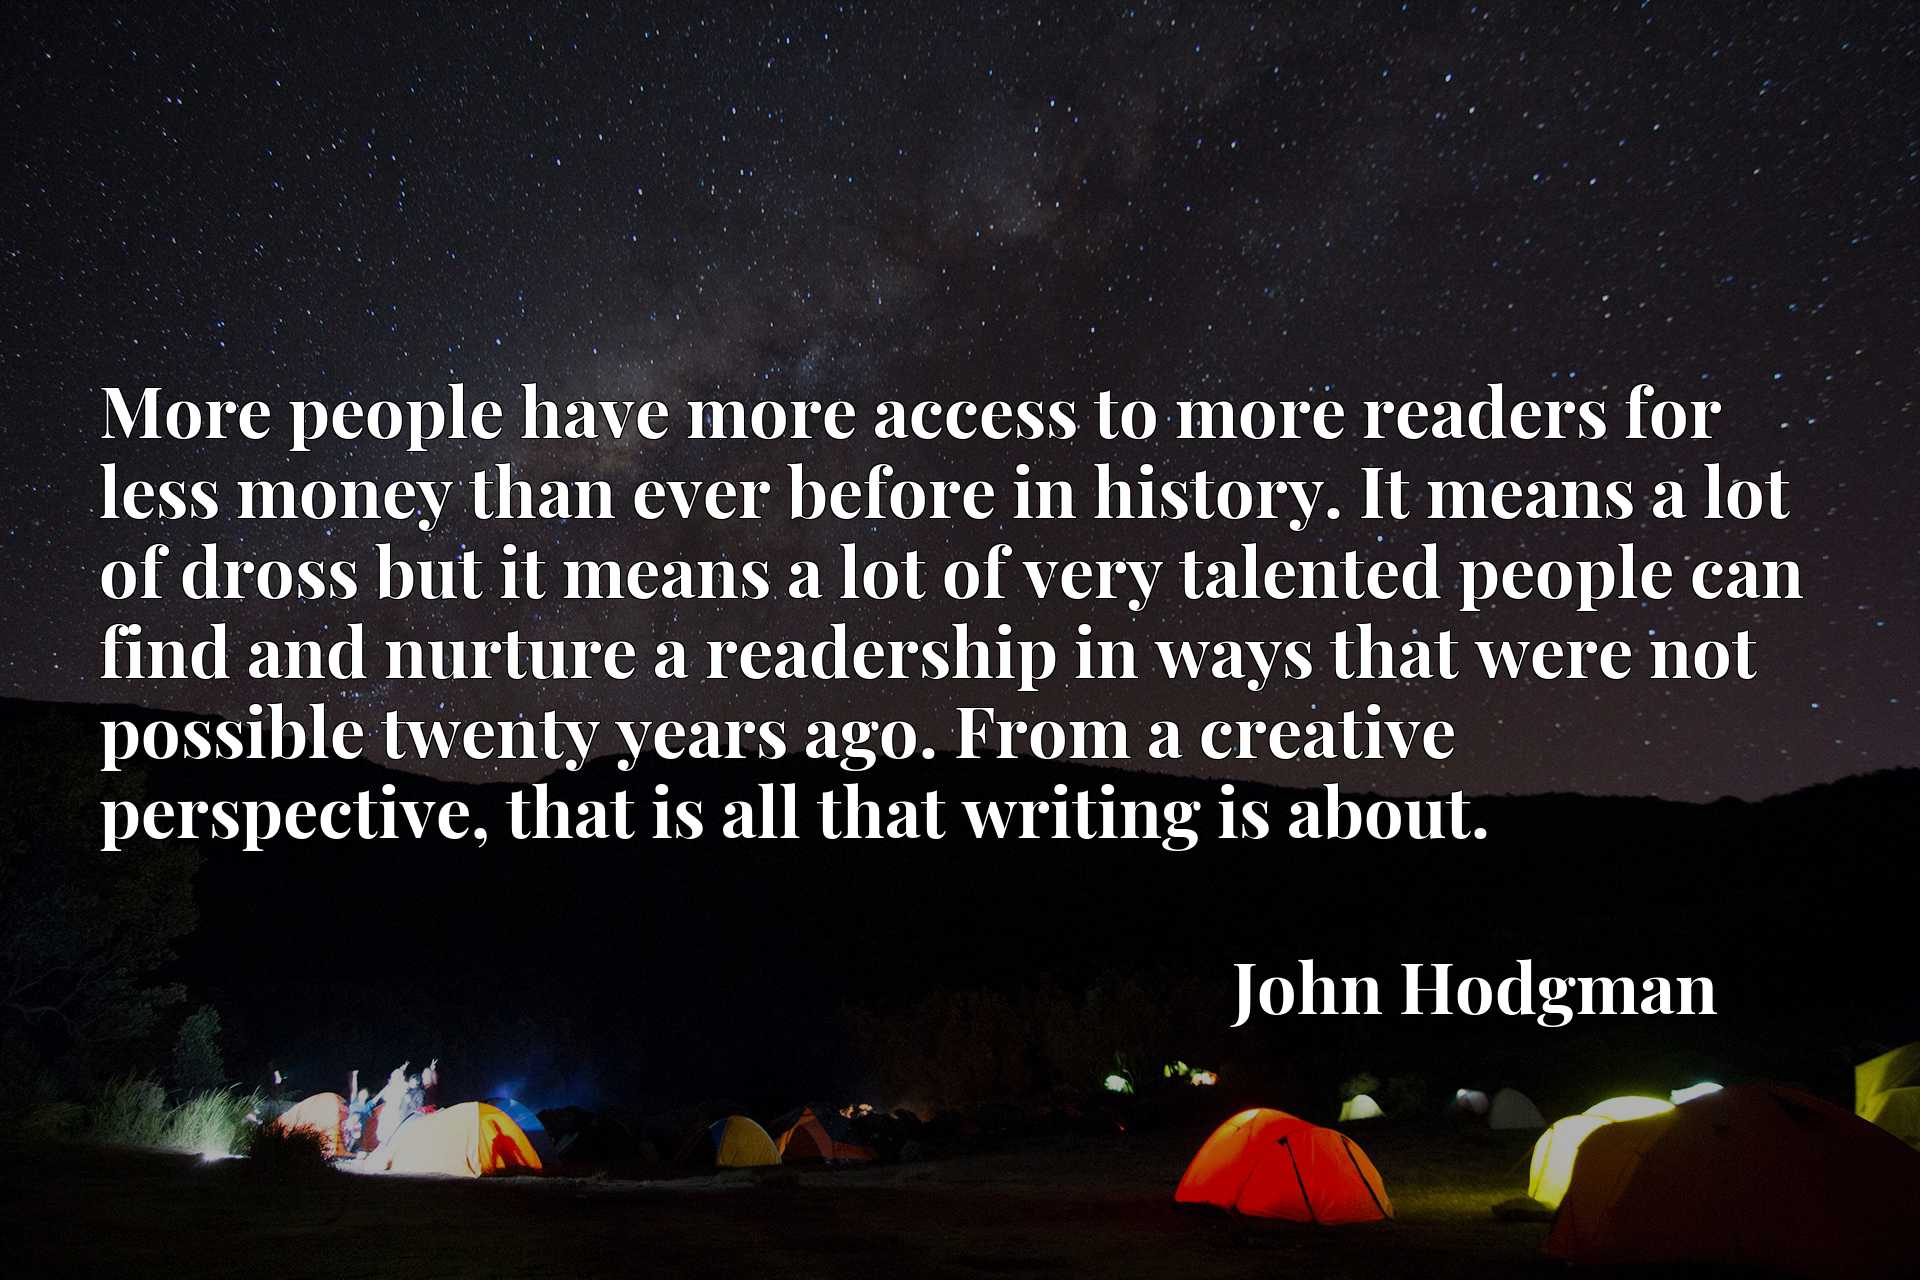 More people have more access to more readers for less money than ever before in history. It means a lot of dross but it means a lot of very talented people can find and nurture a readership in ways that were not possible twenty years ago. From a creative perspective, that is all that writing is about.